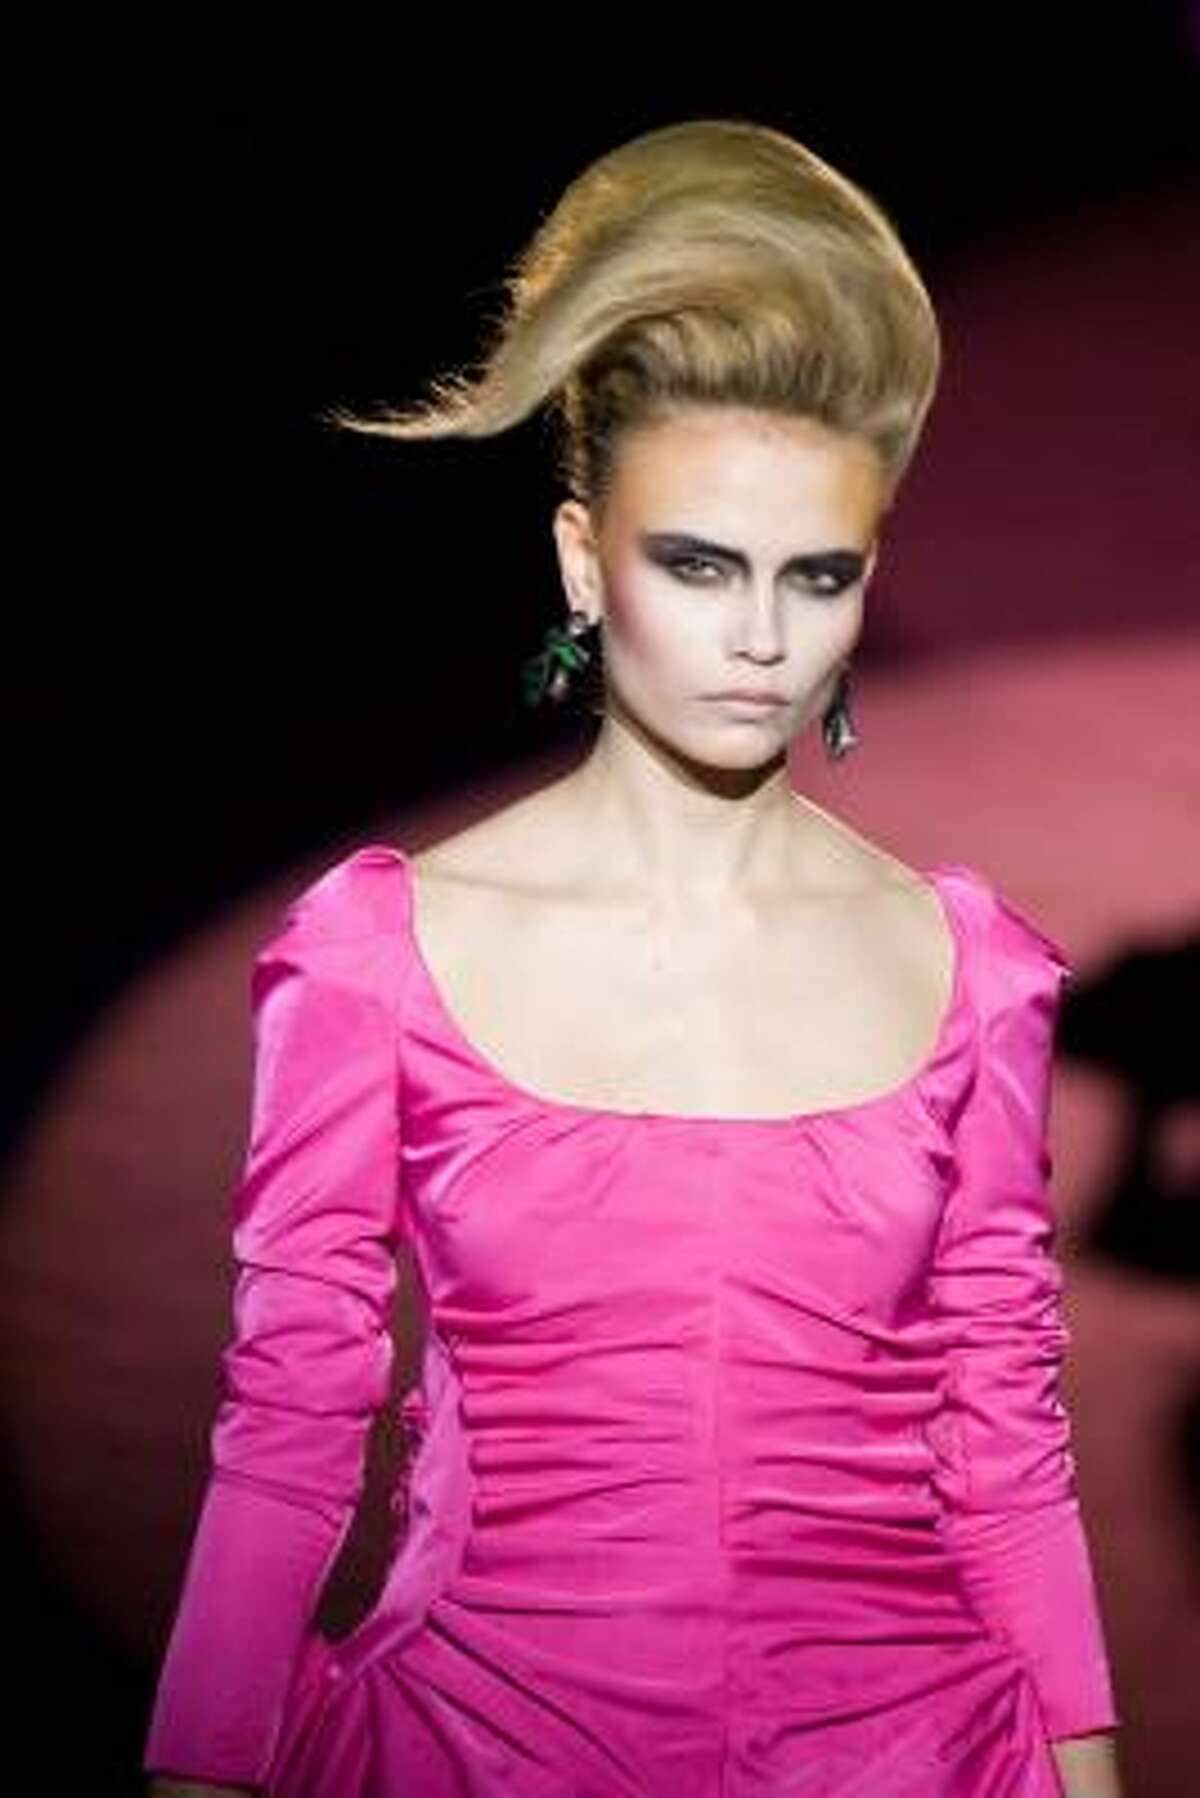 Model Natasha Poly makes a statemen in this hot pink Marc Jacobs Fall 2009 ruched dress. Read more about how to incorporate the color into your wardrobe at Hot pink is popping.